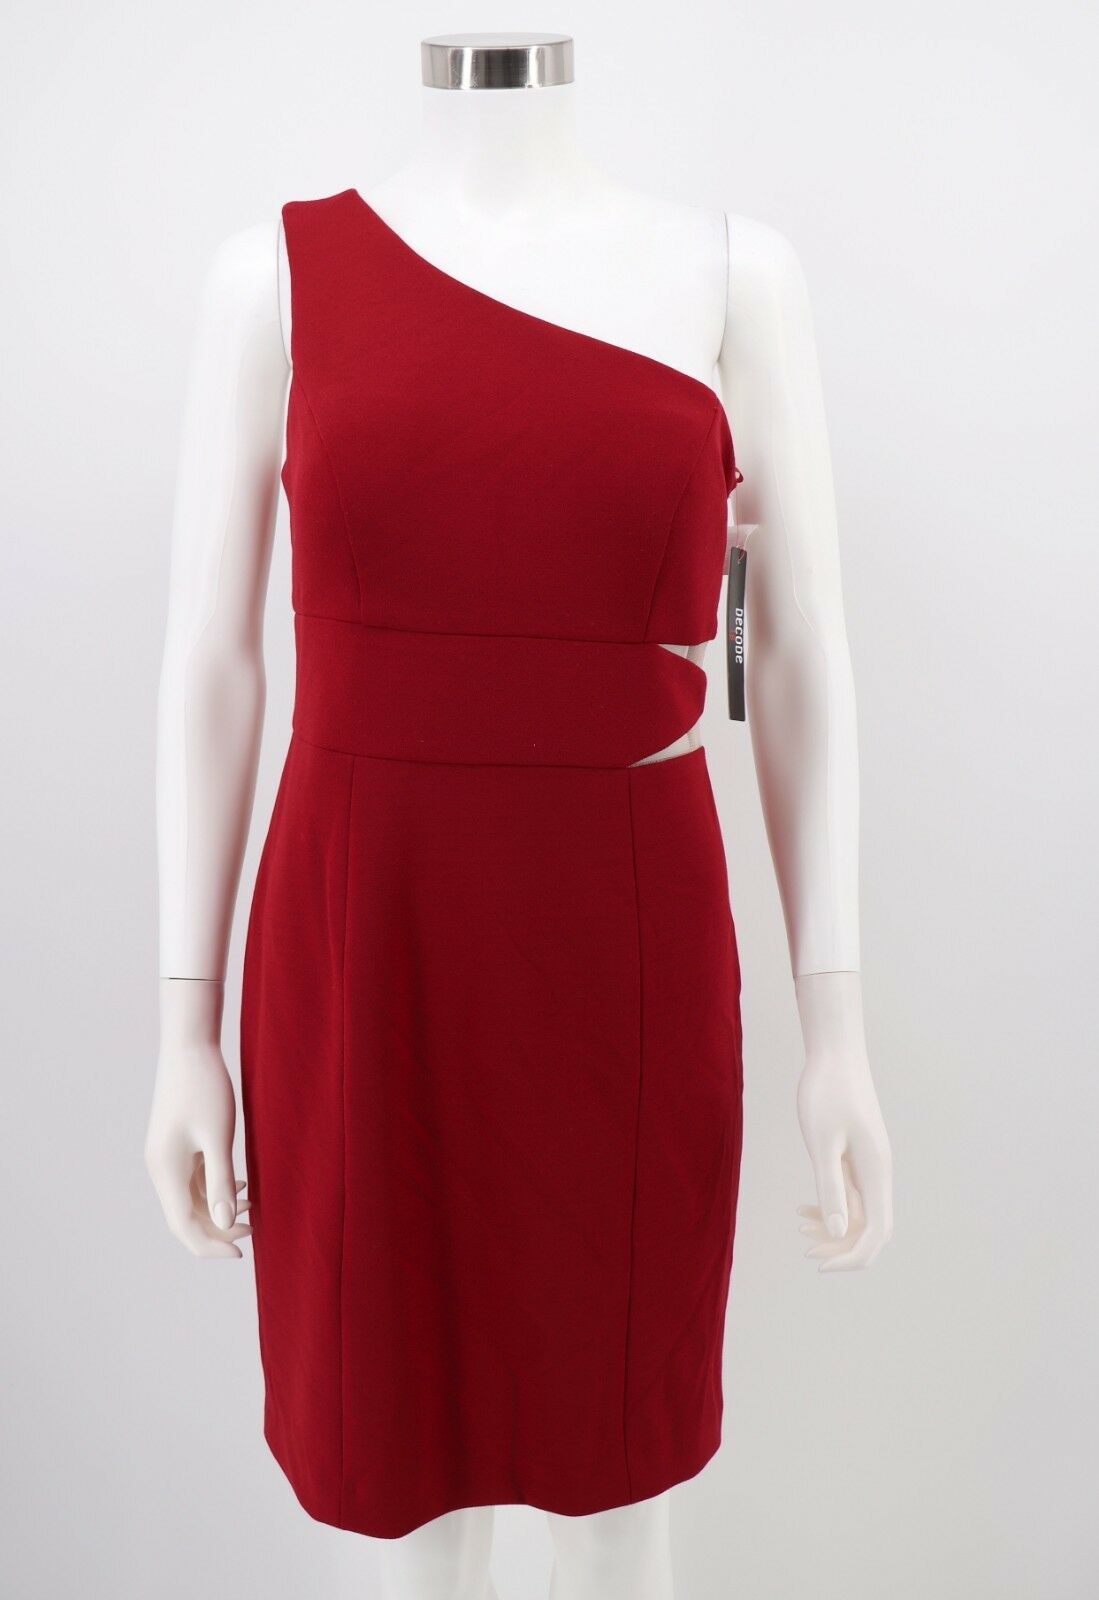 Decode 1.8 Dress 10 NWT Womens Red Red Red Stretch One-Shoulder Bodycon Sheath 78edfb